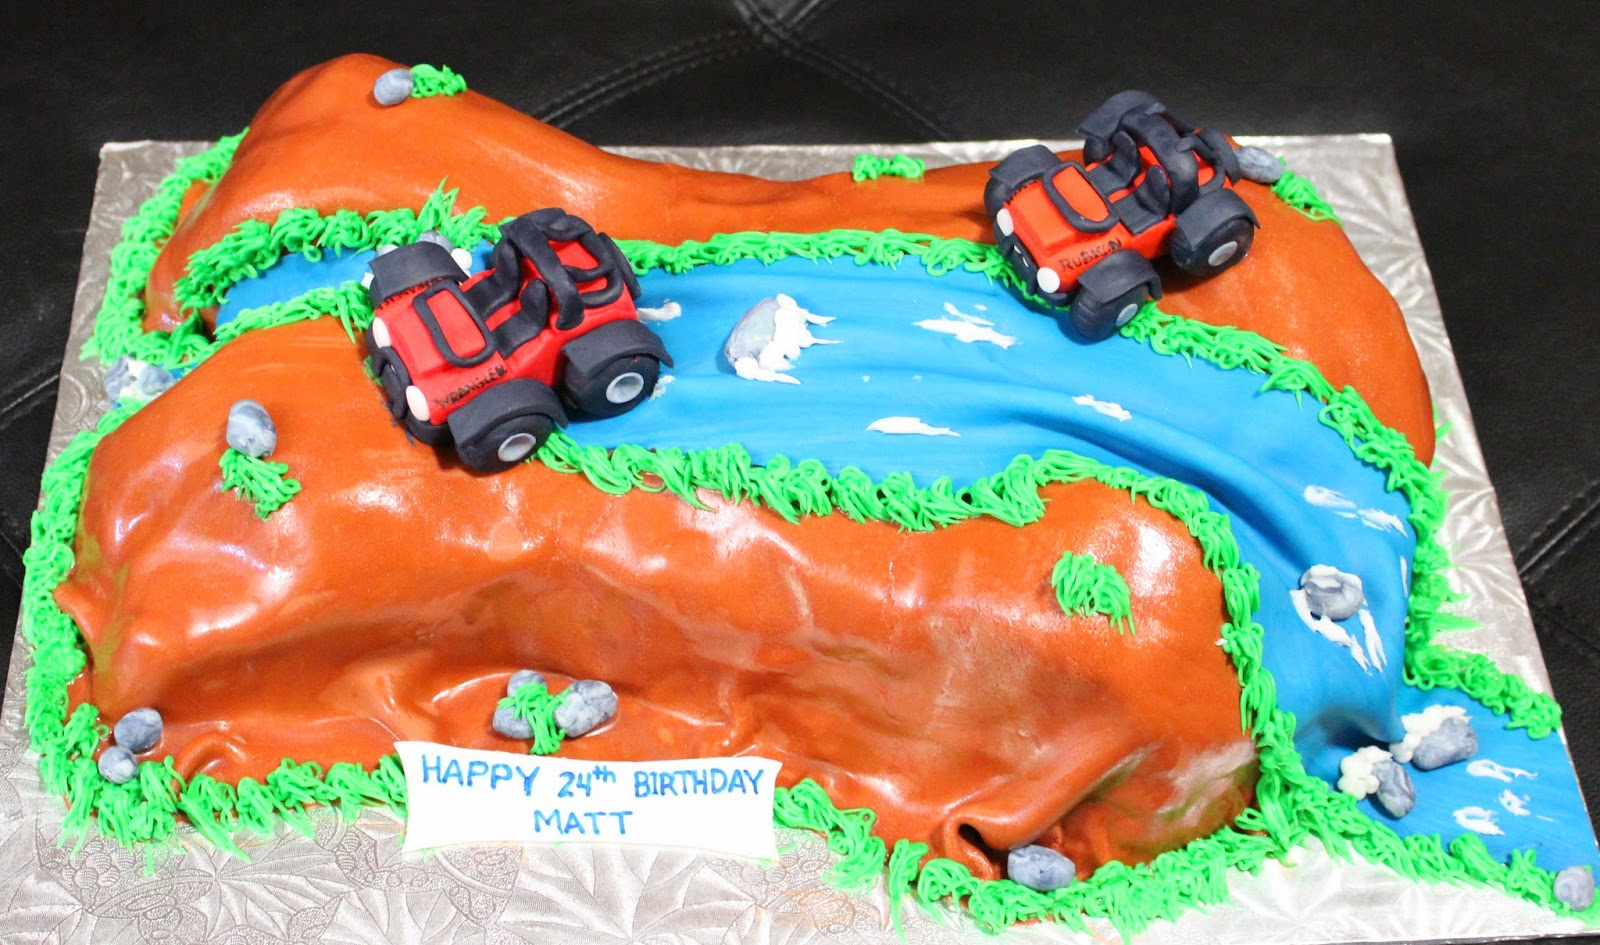 How To Make Off Roading Cake